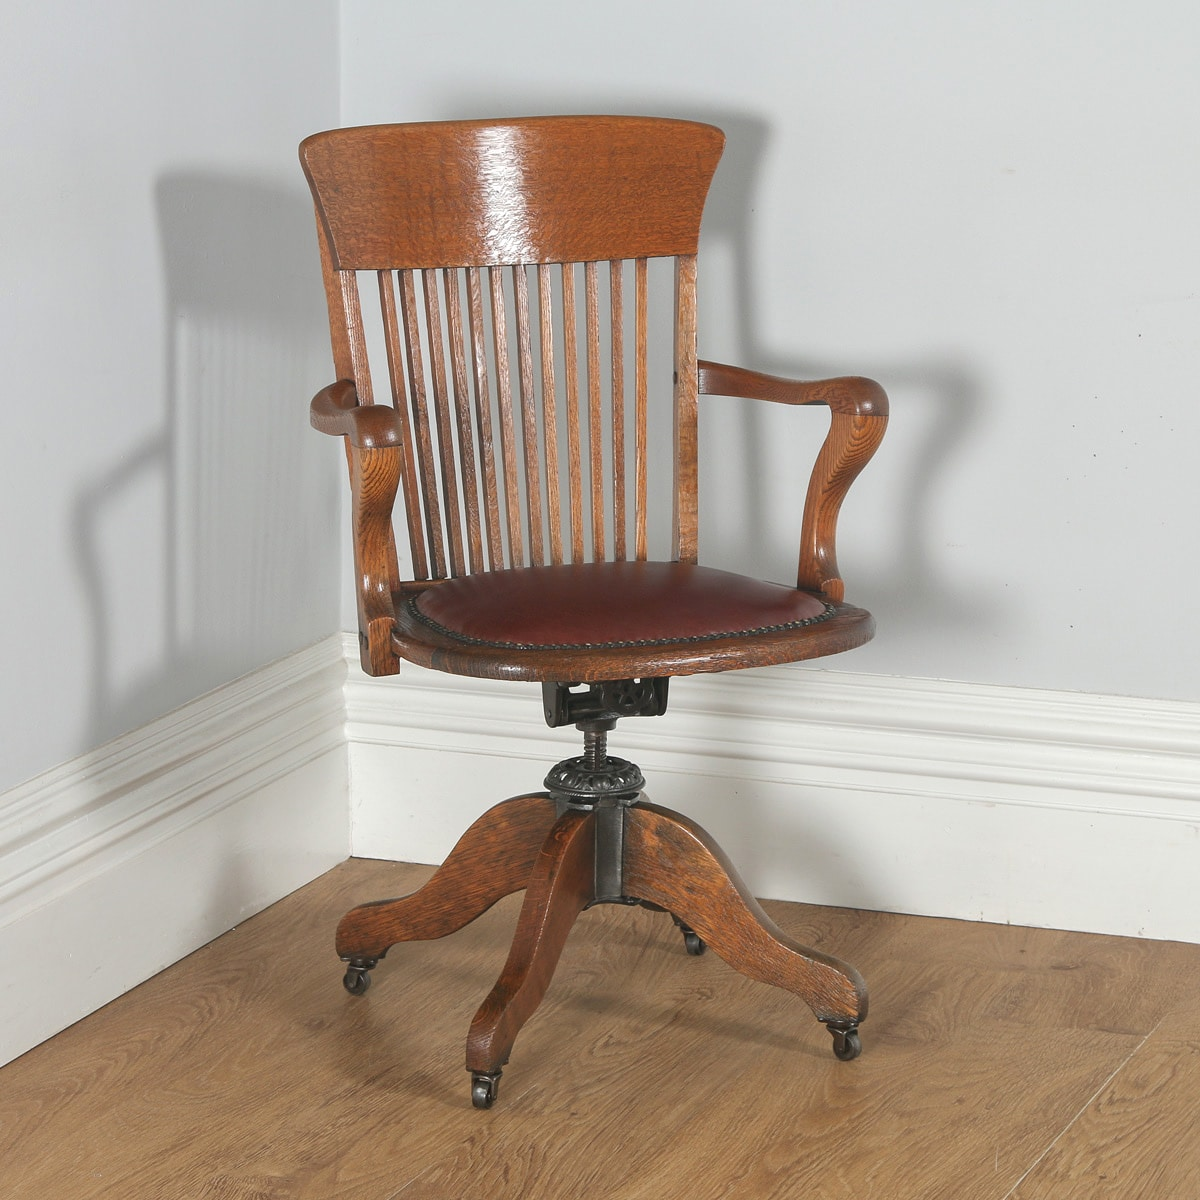 revolving chair in english rustic pub table and chairs antique edwardian oak leather office